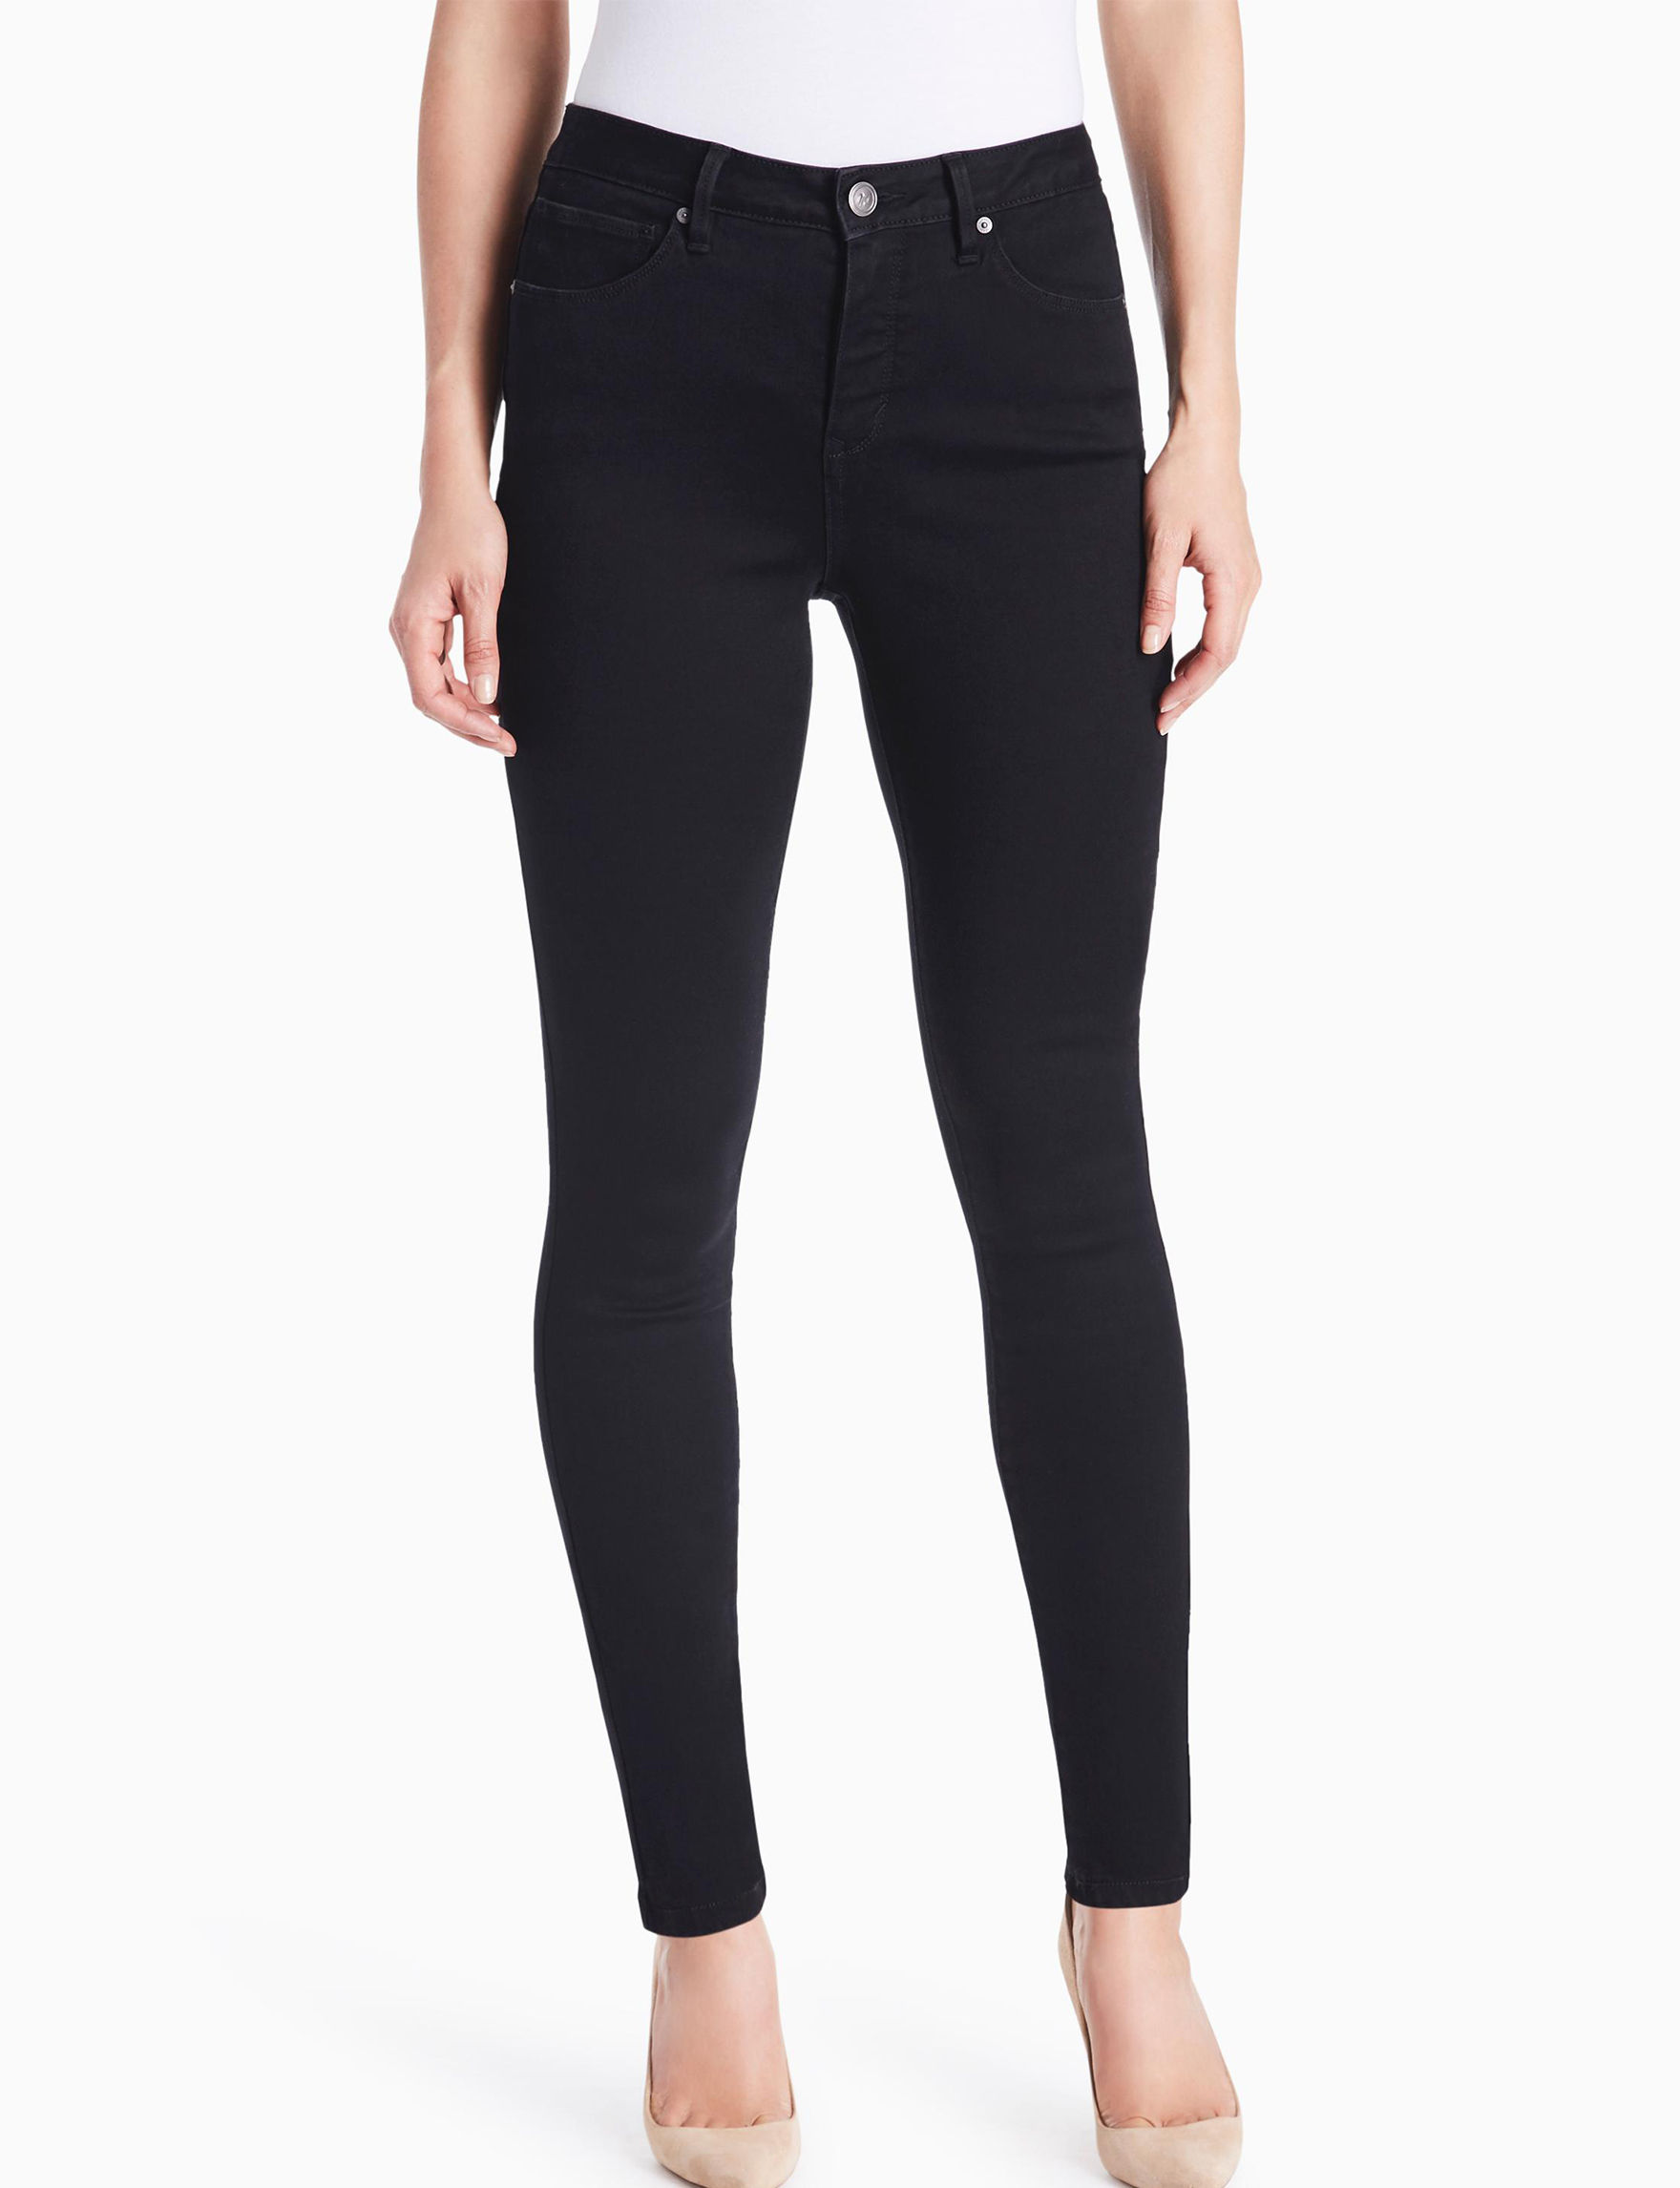 Miracle Jean Black Bootcut Leggings